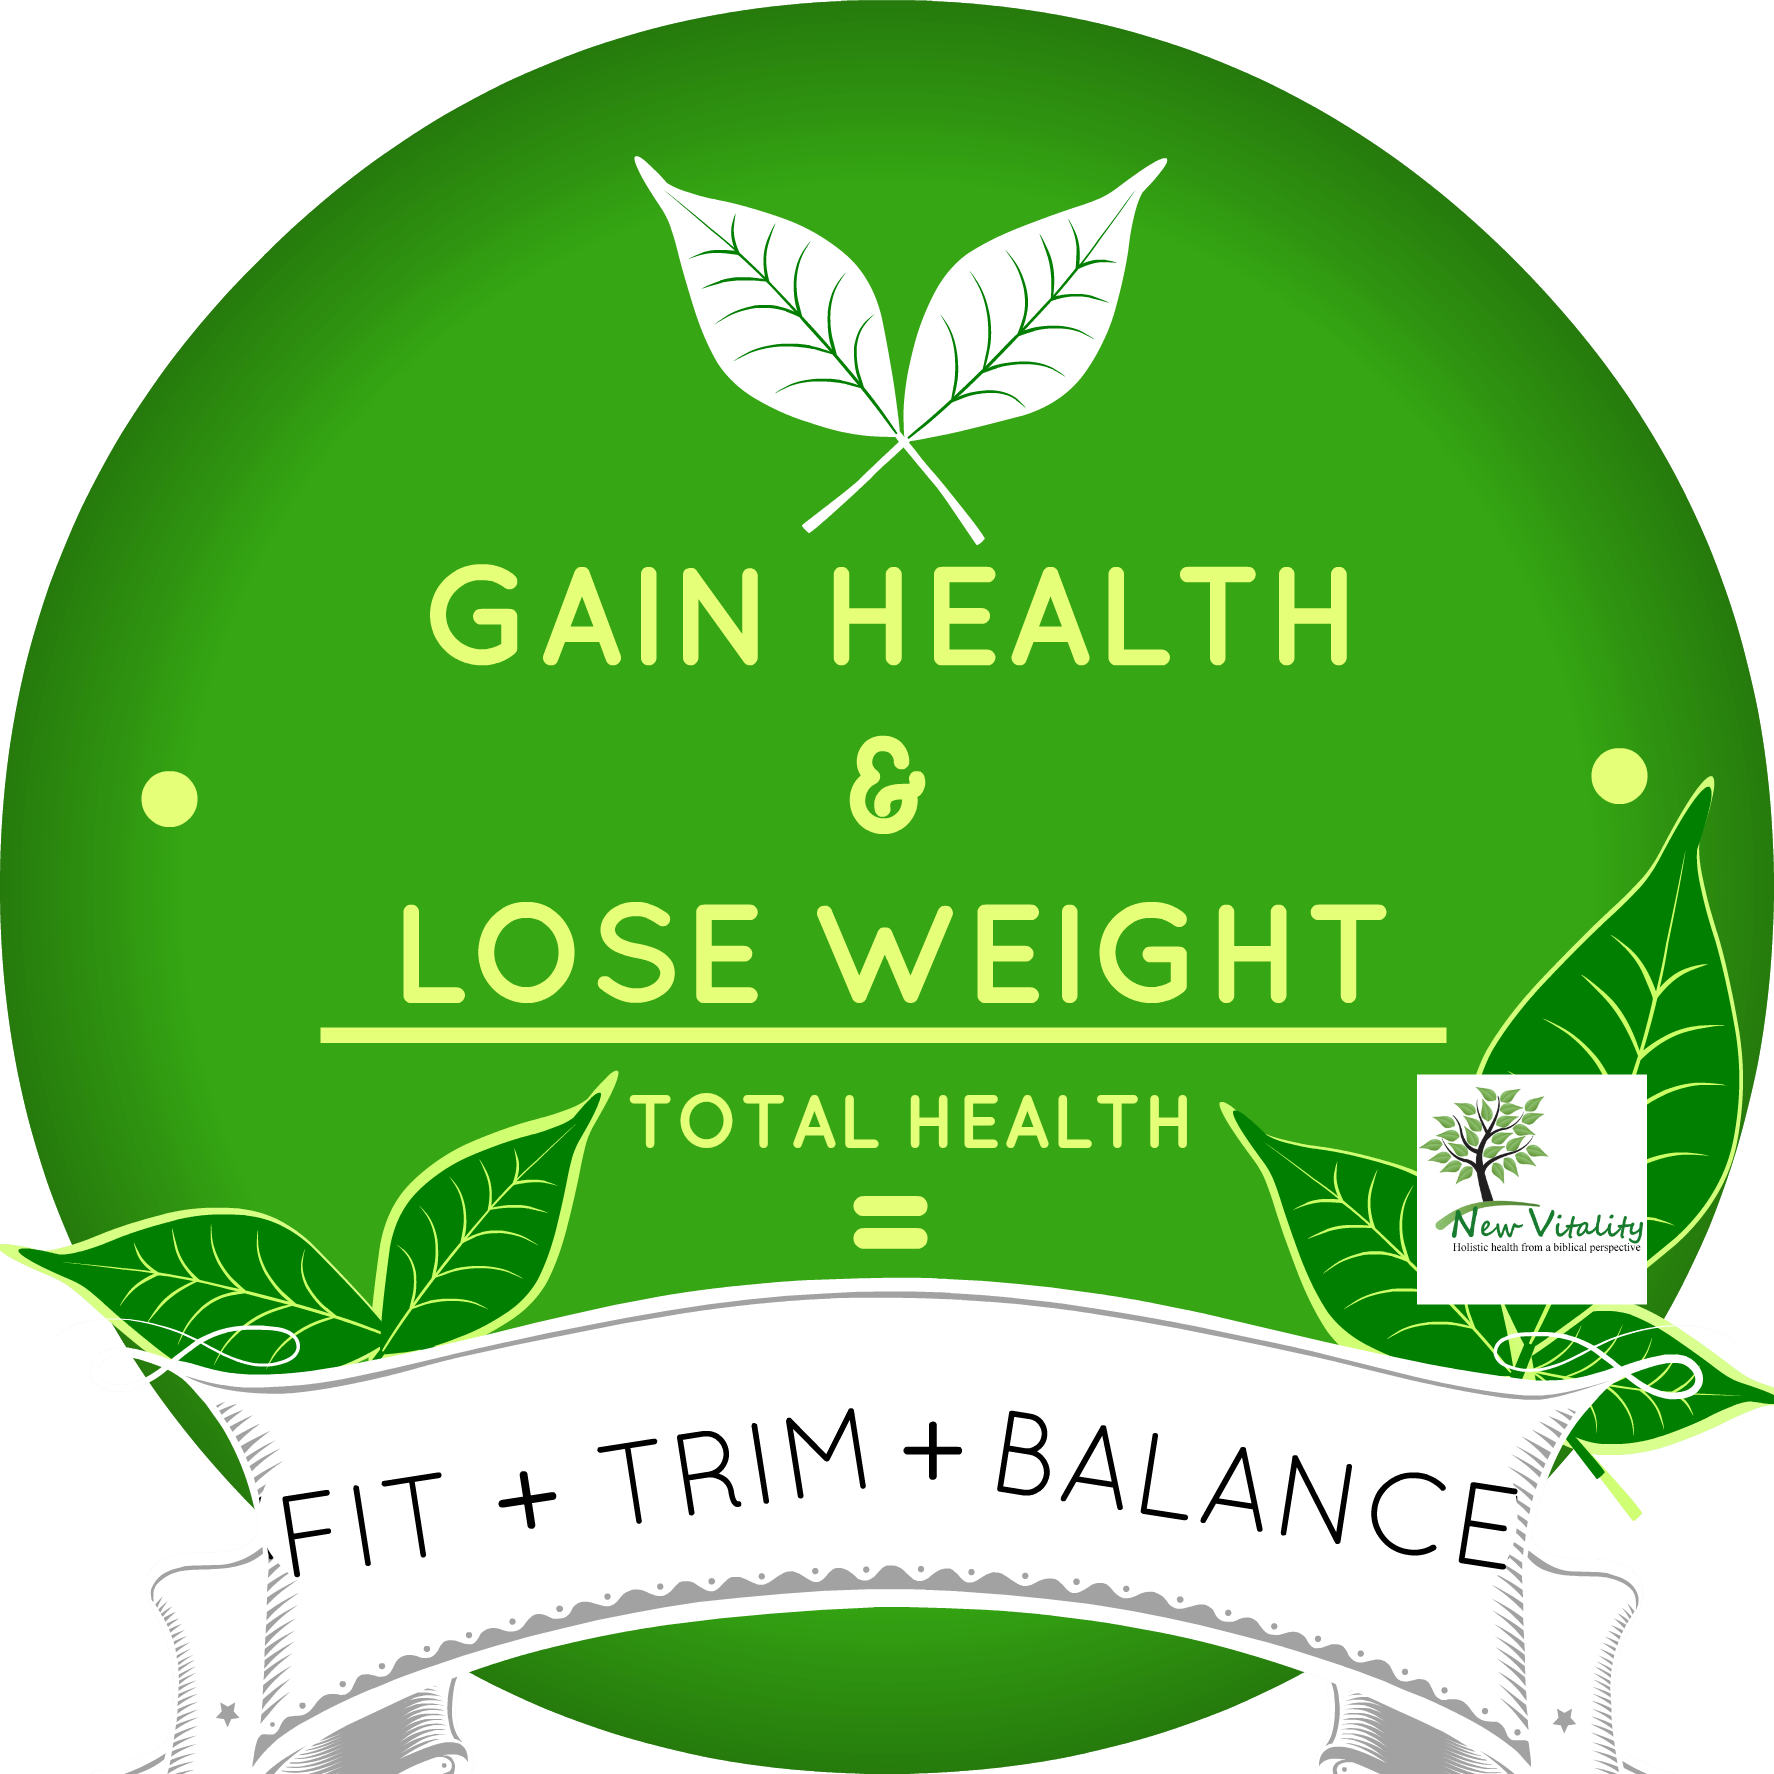 GAIN HEALTH LOSE WEIGHT3